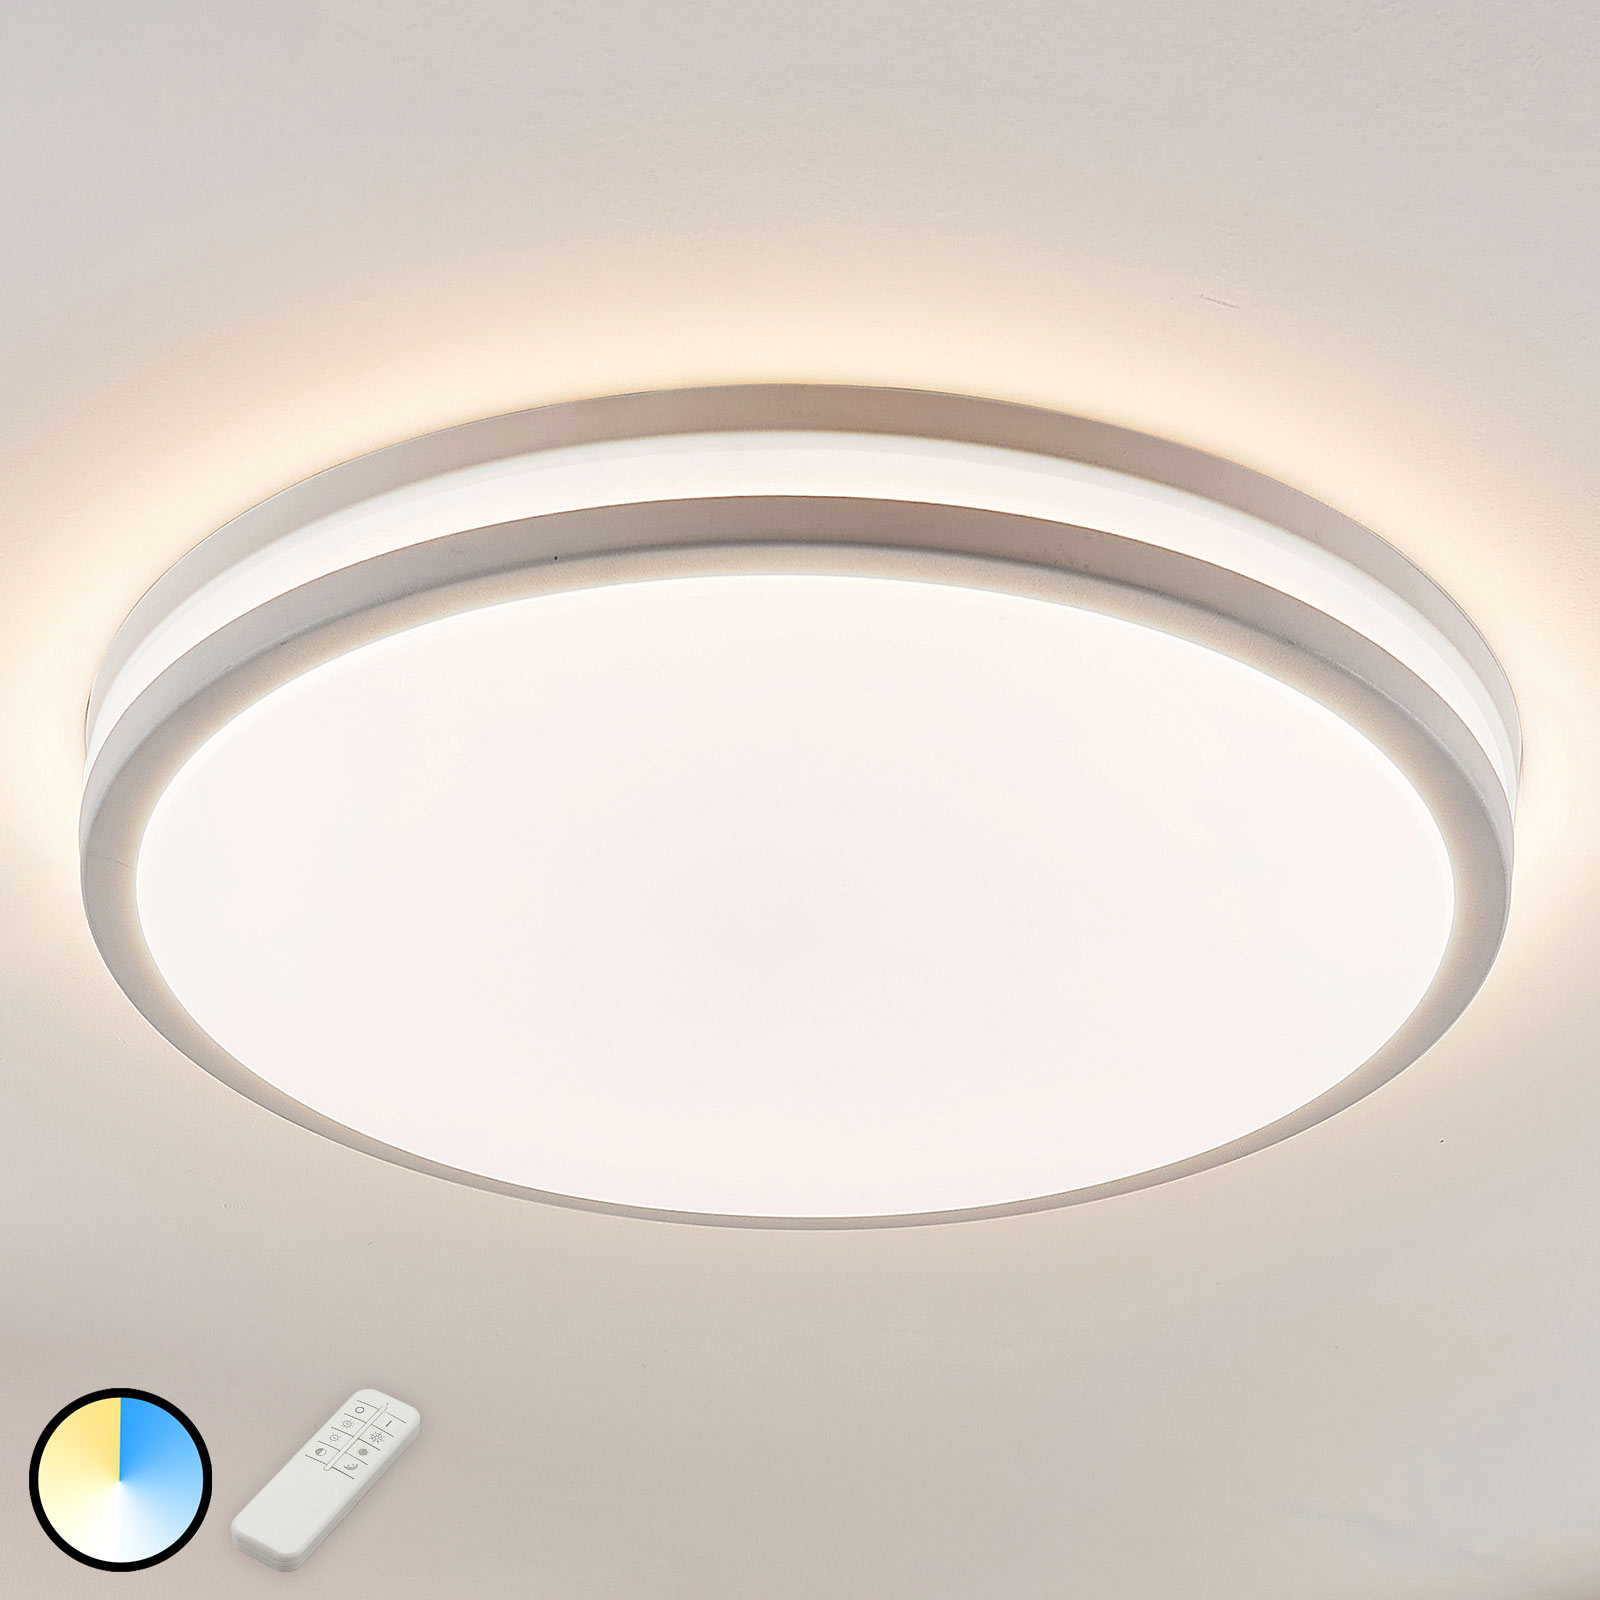 LED plafondlamp Armin in wit, ronde vorm